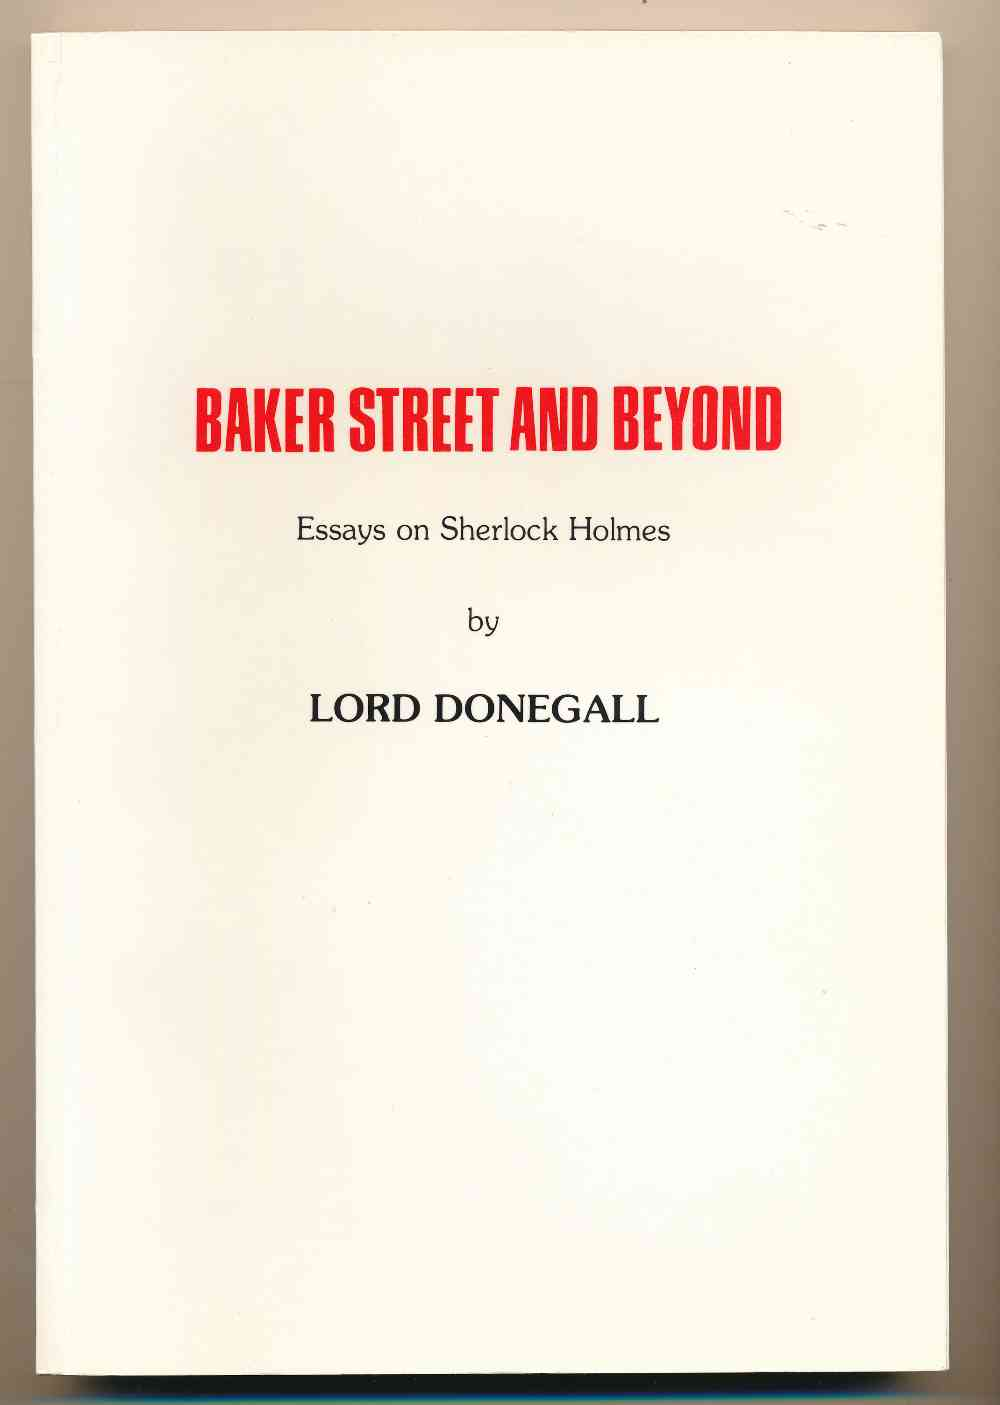 Baker Street and beyond : essays on Sherlock Holmes